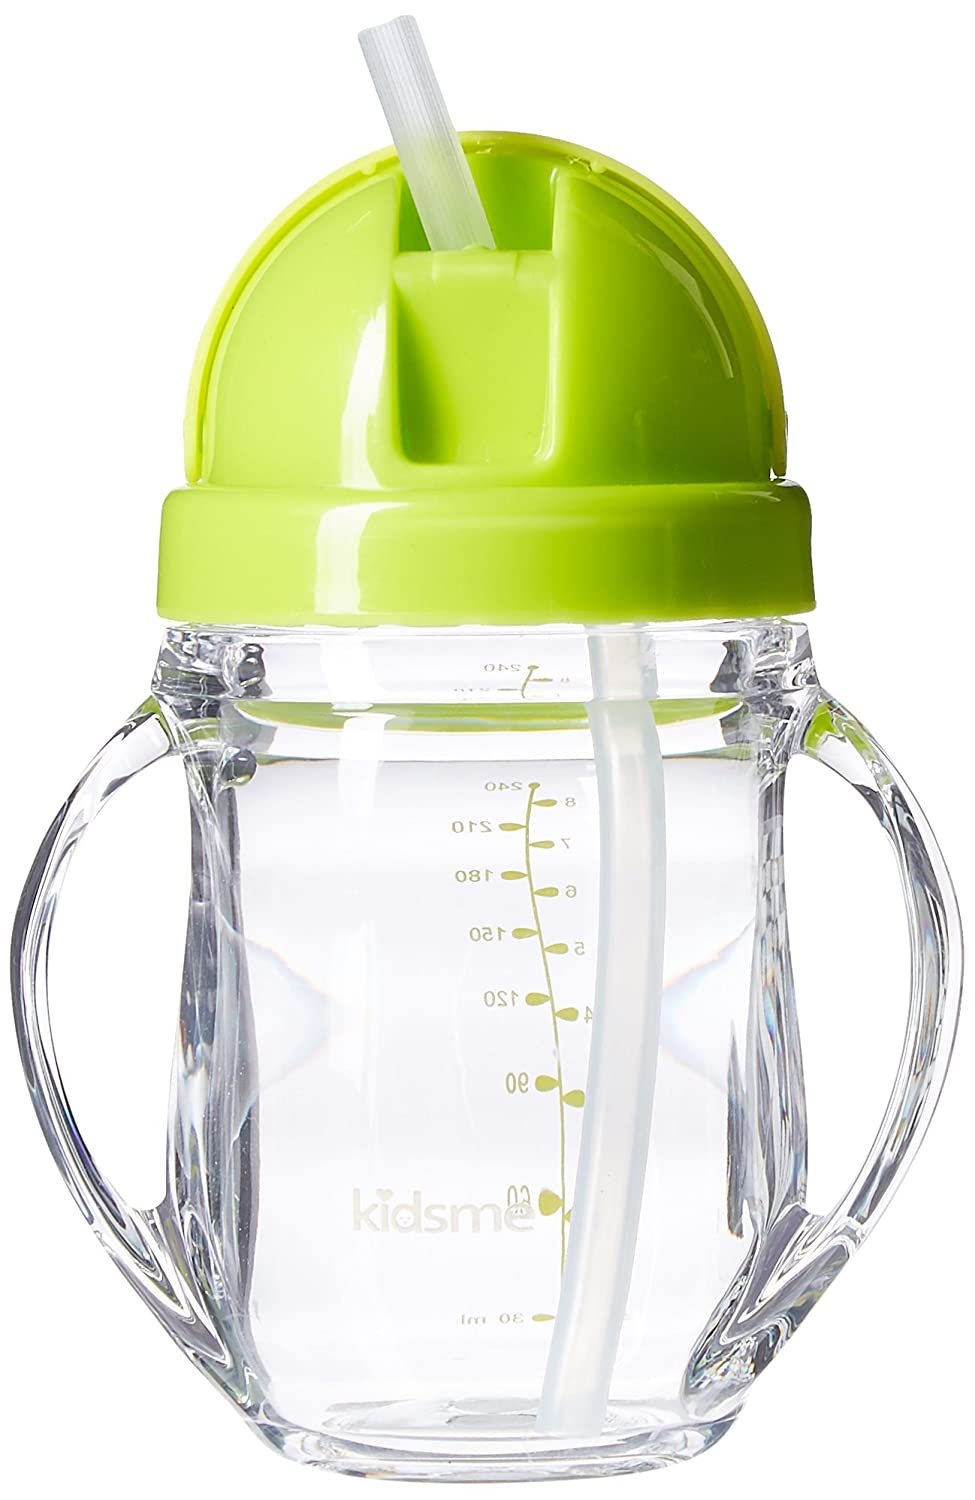 Kidsme Spill Proof Triton Straw Sippy Cup Green